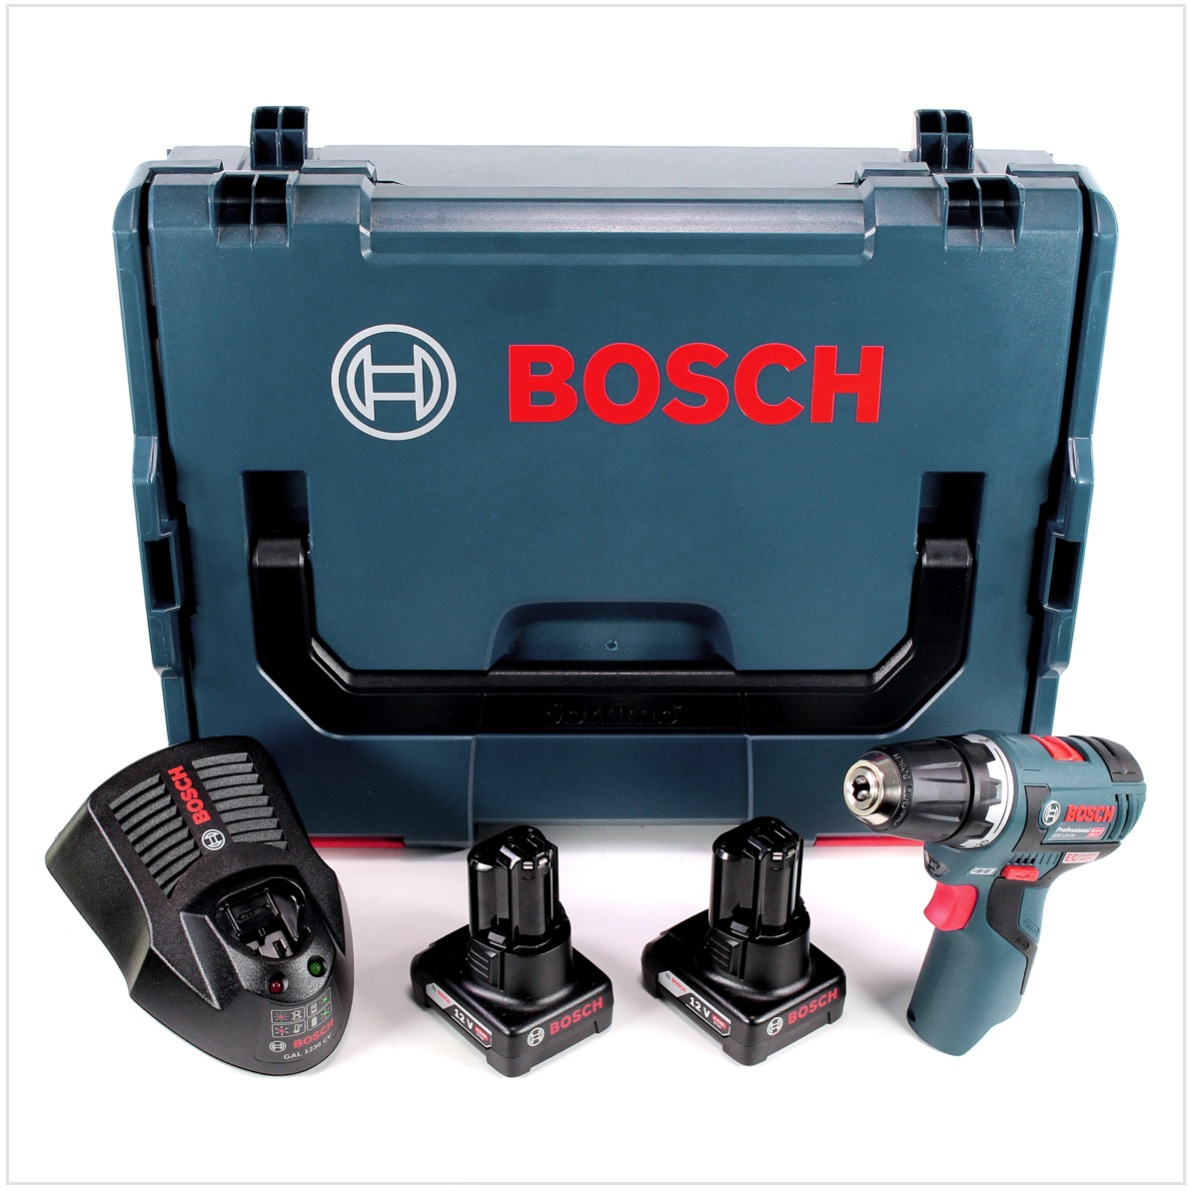 bosch gsr 12v 20 akku bohrschrauber brushless 20 nm 2x 4 0 ah akku ladeger t ebay. Black Bedroom Furniture Sets. Home Design Ideas